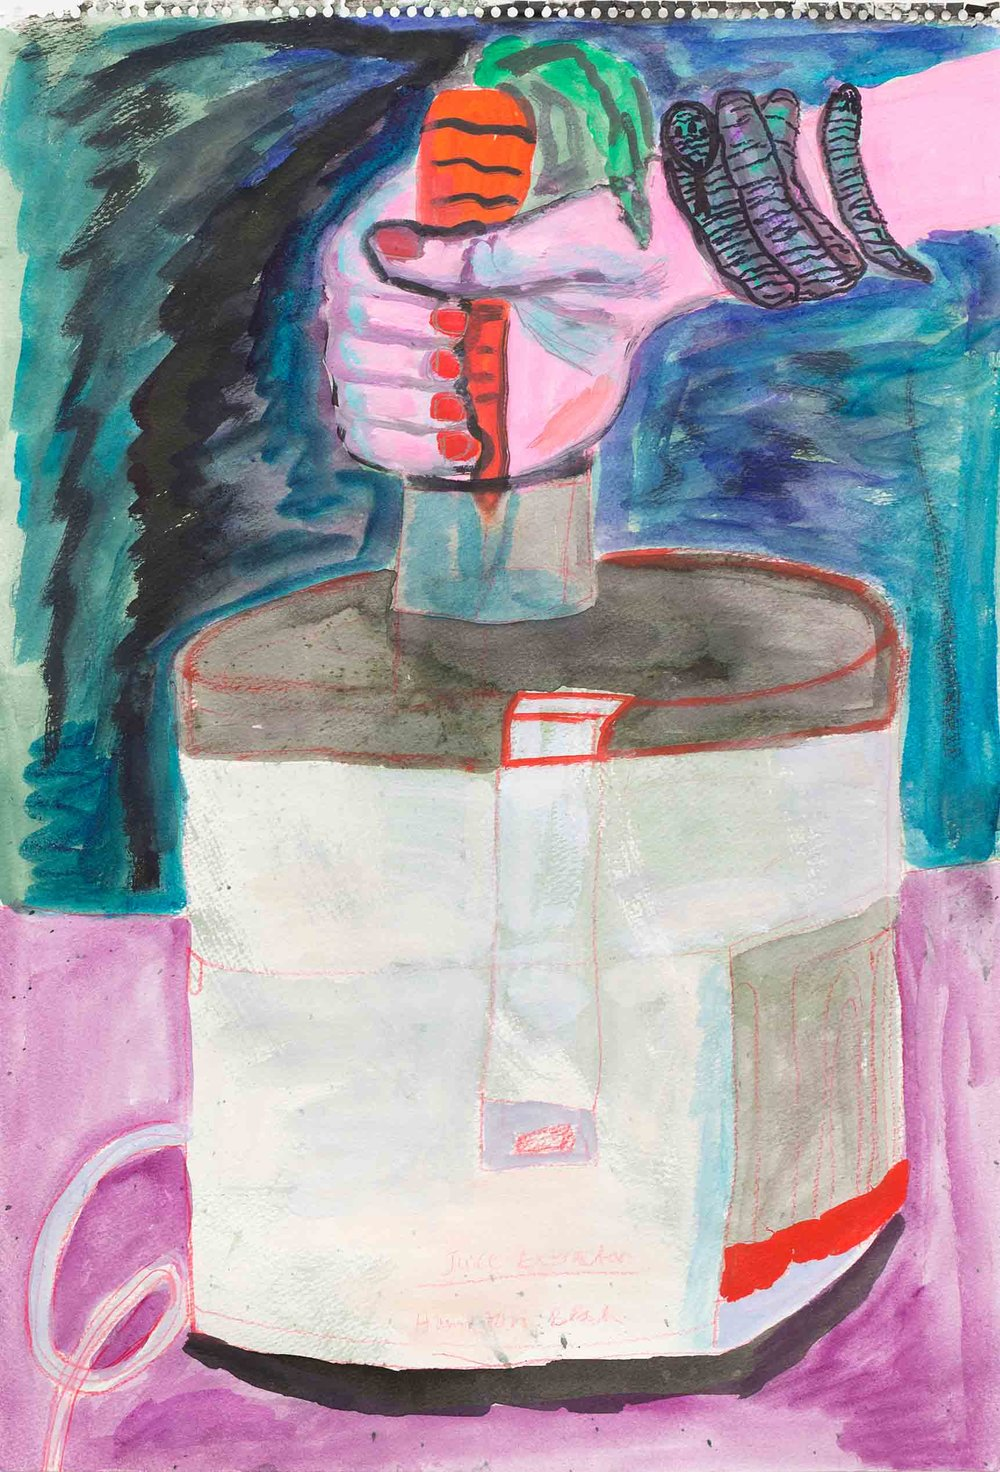 Juicing at Night, 2015, 22 x 15 inches, $300